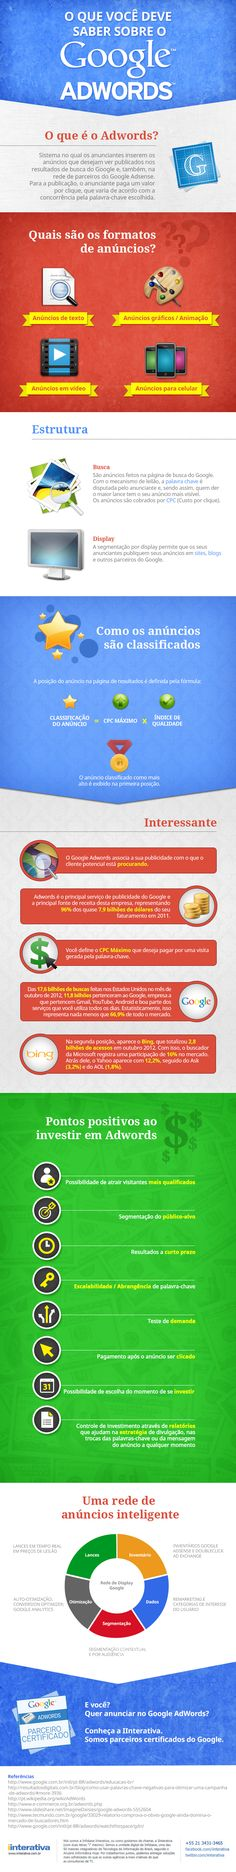 Descubra como funciona o Google Adwords. #SocialMedia #Adwords #infographic                                                                                                                                                     Mais Inbound Marketing, Business Marketing, Internet Marketing, Online Marketing, Social Media Digital Marketing, Web Design, Software, Digital Media, Advertising